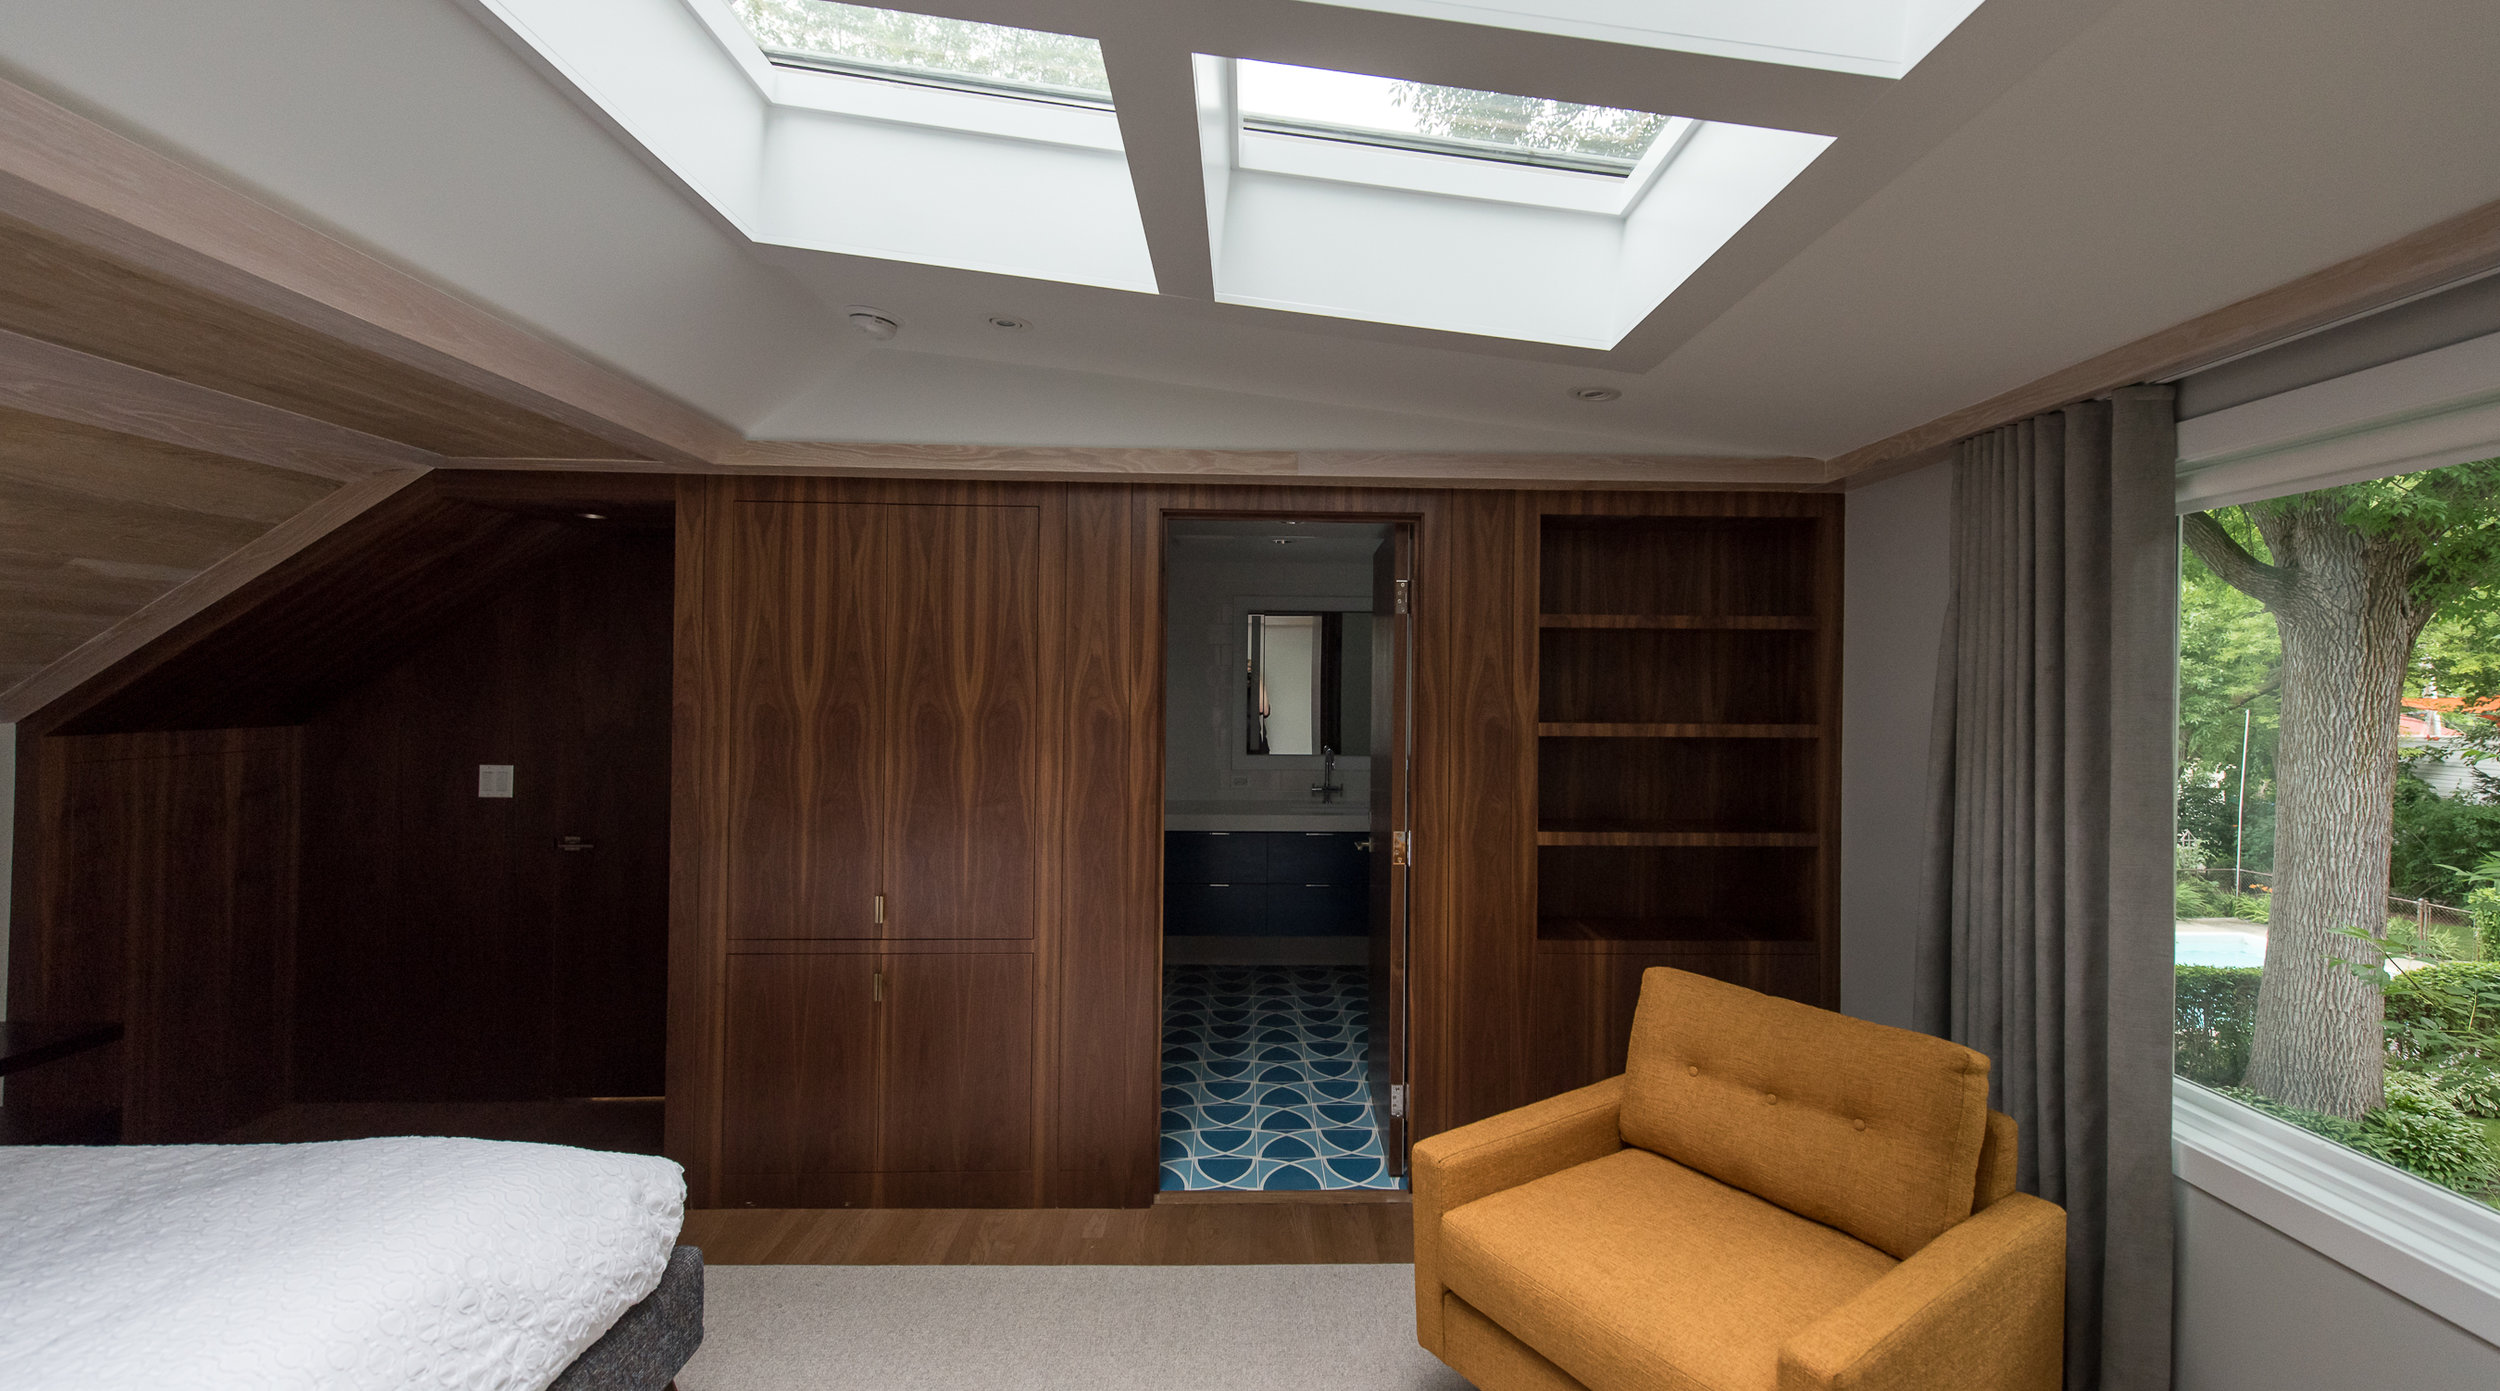 Master suite, Evanston IL. A attic in this mid-century modern split level was remodeled. New, larger windows and skylights added.